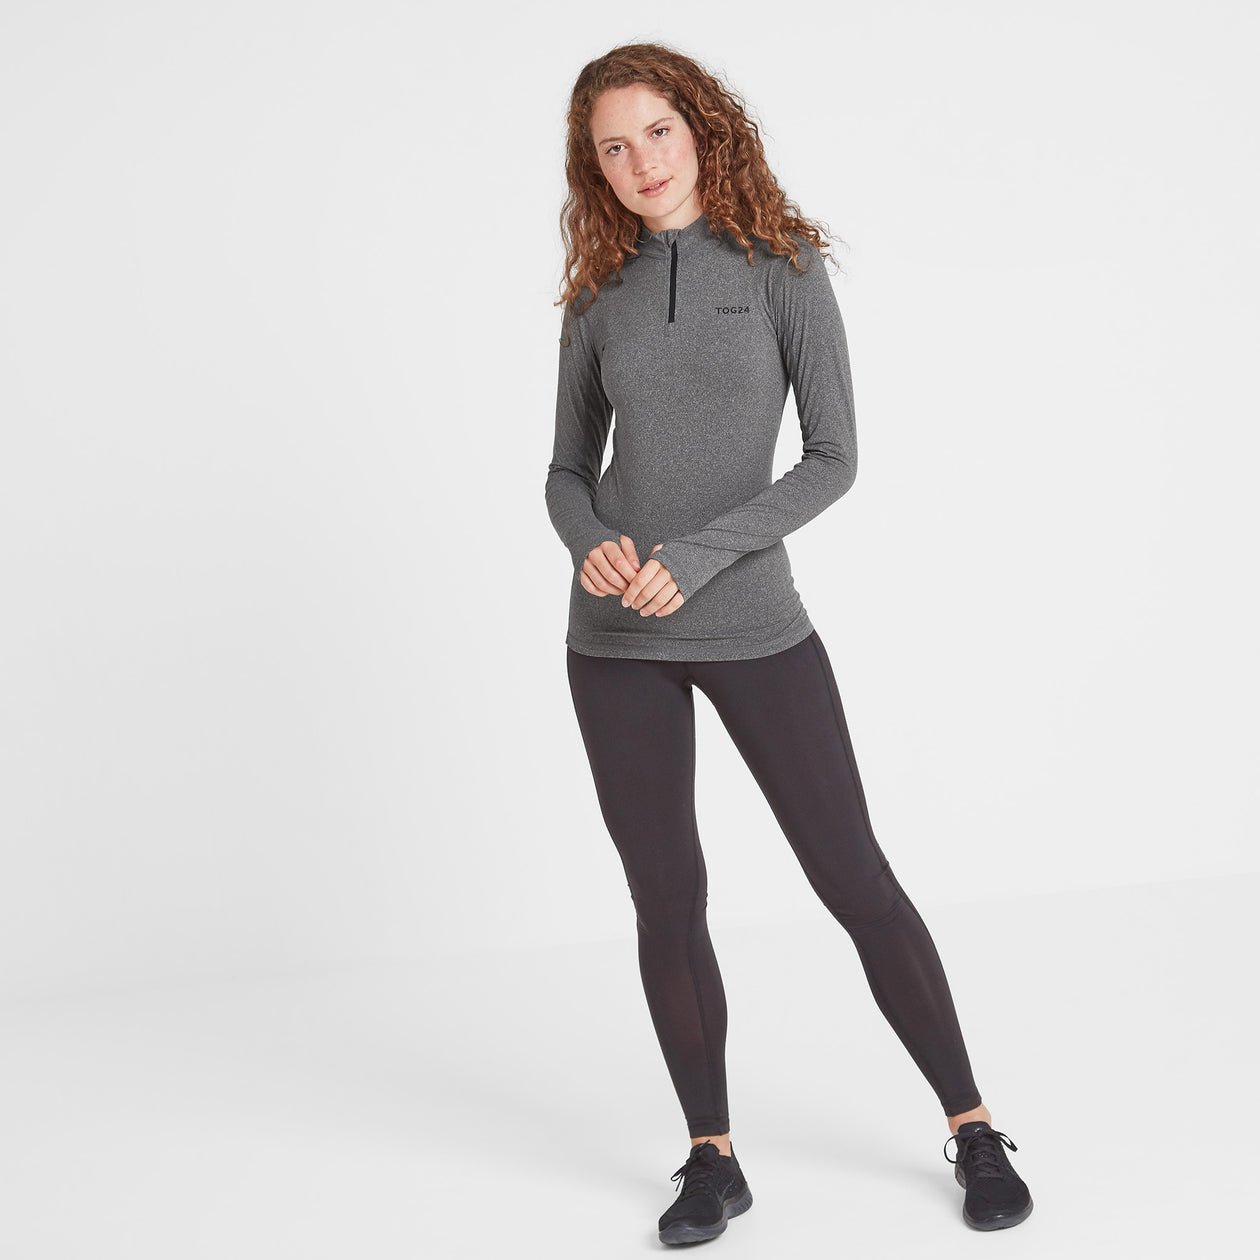 Snowdon Womens Thermal Zip Neck - Grey Marl image 4